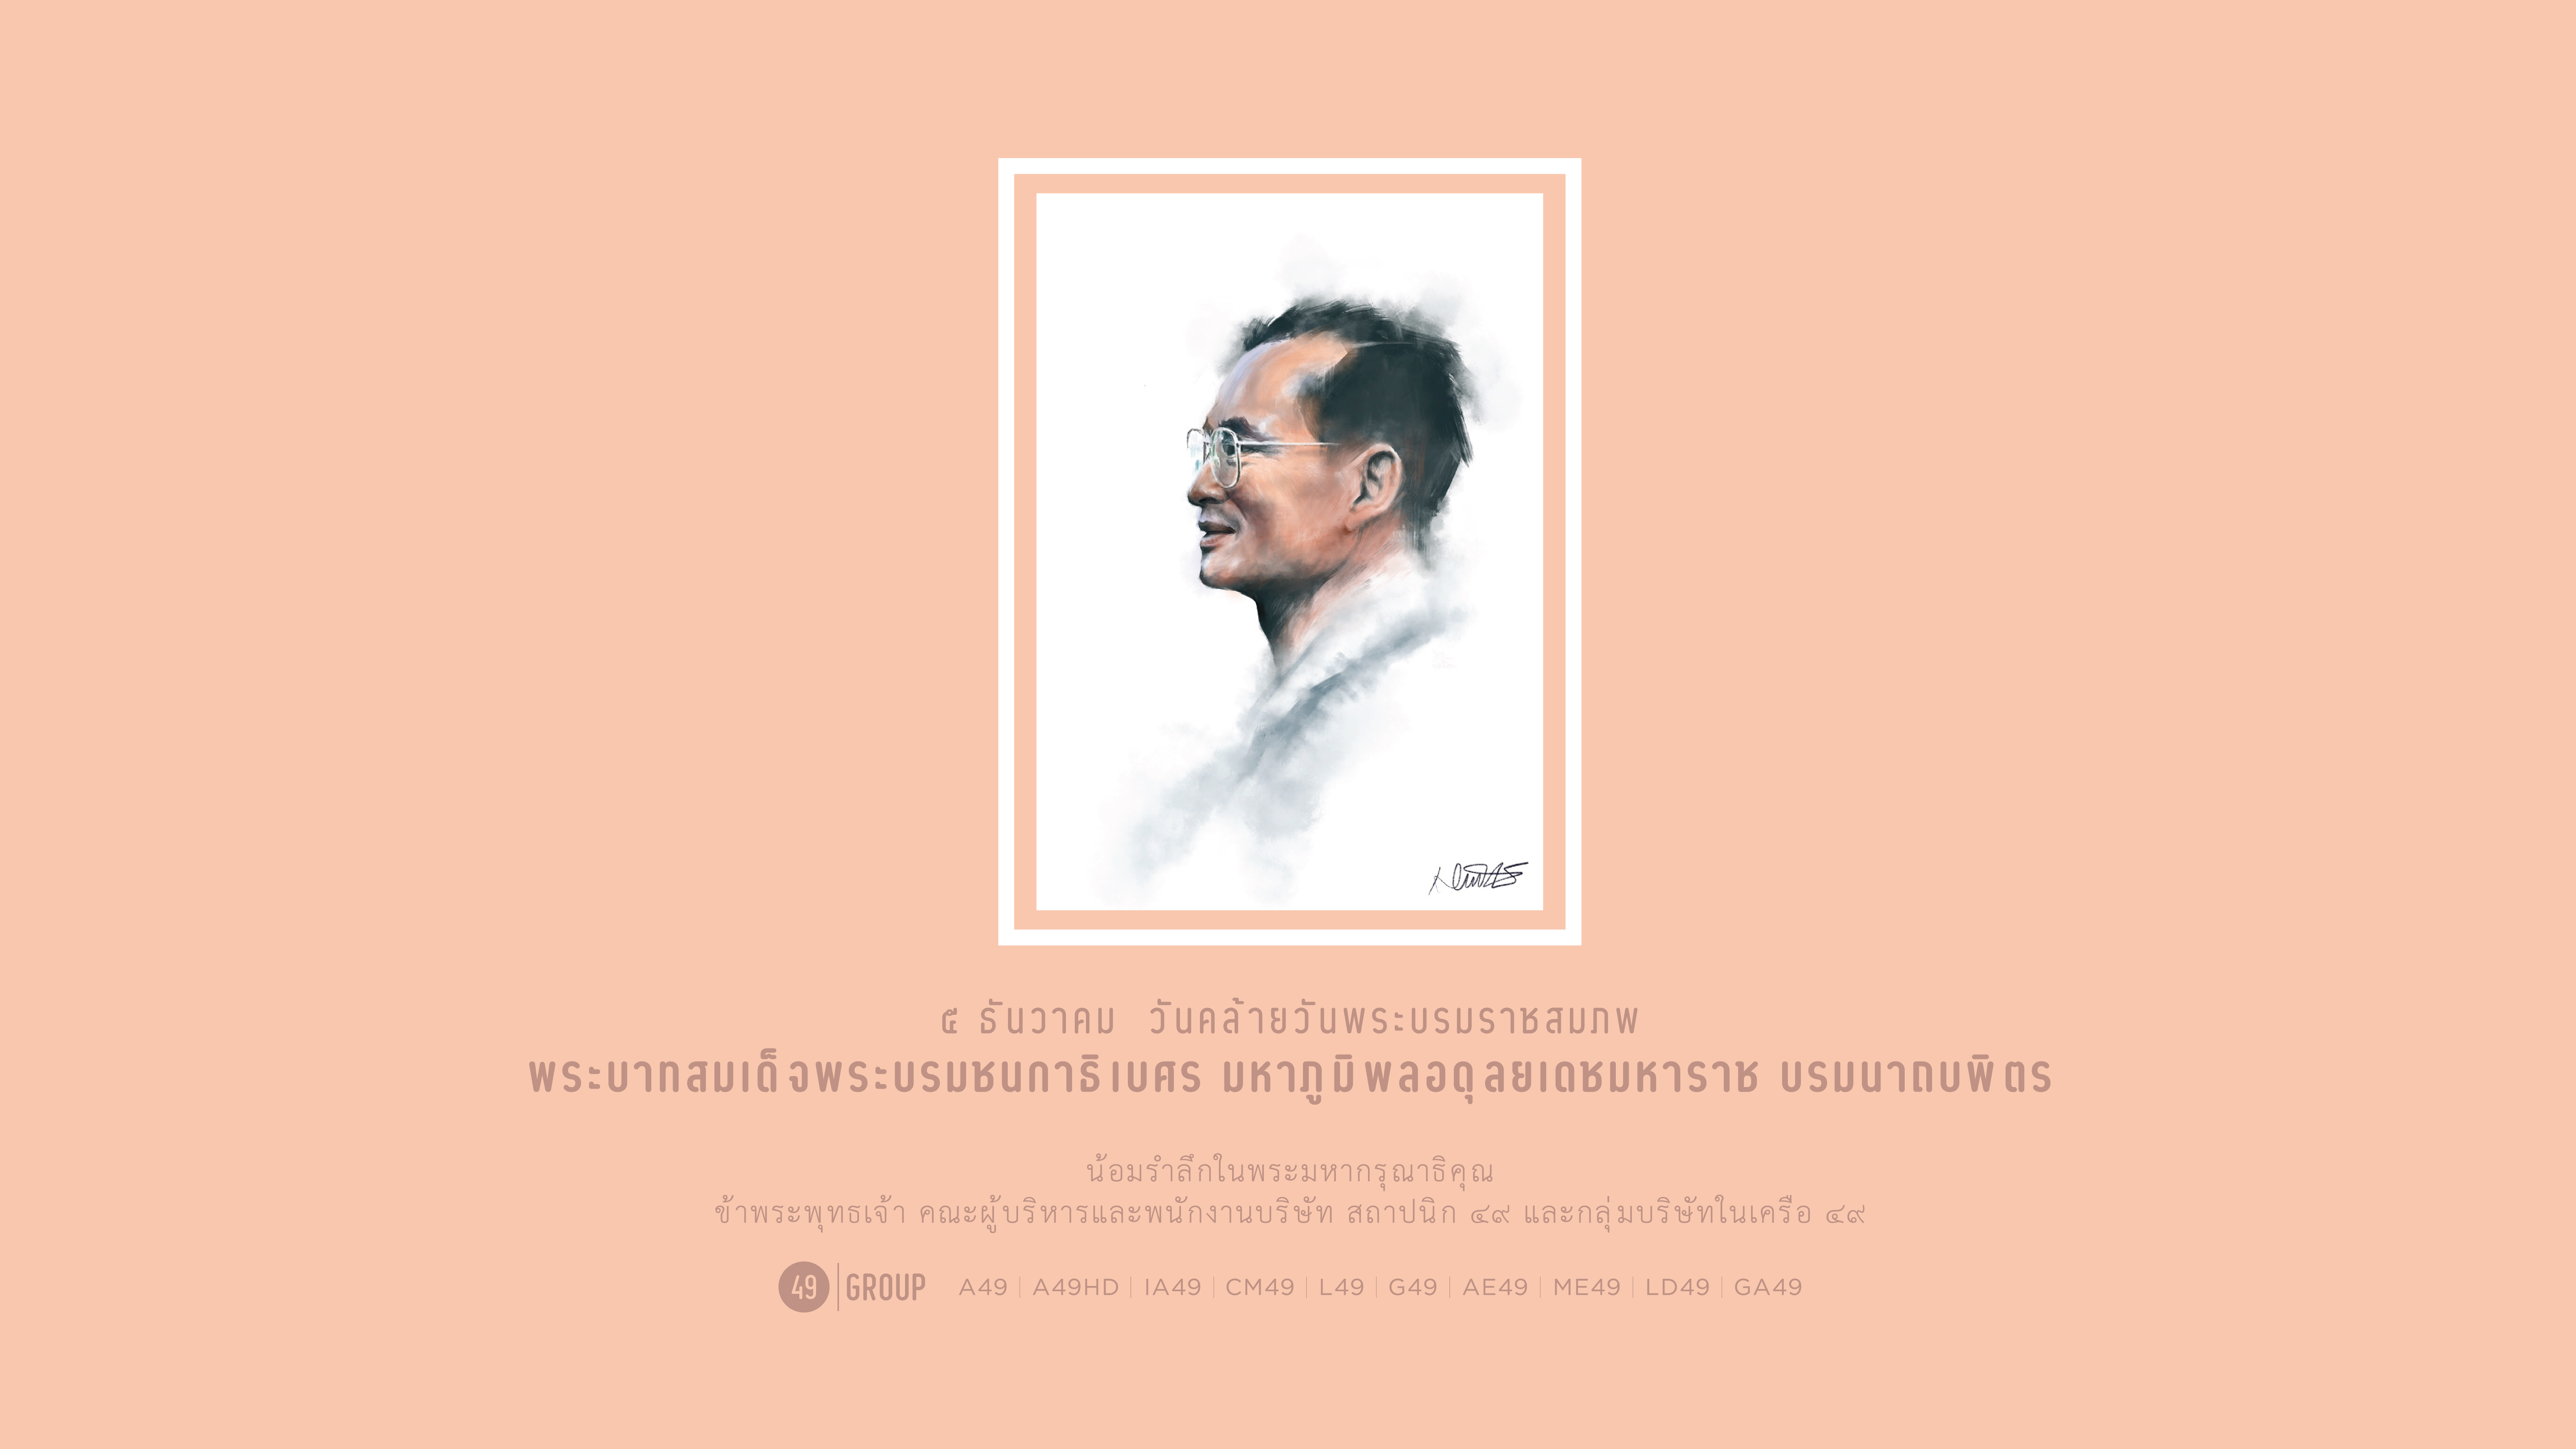 The birthday of His Majesty the late King Bhumibol Adulyadej